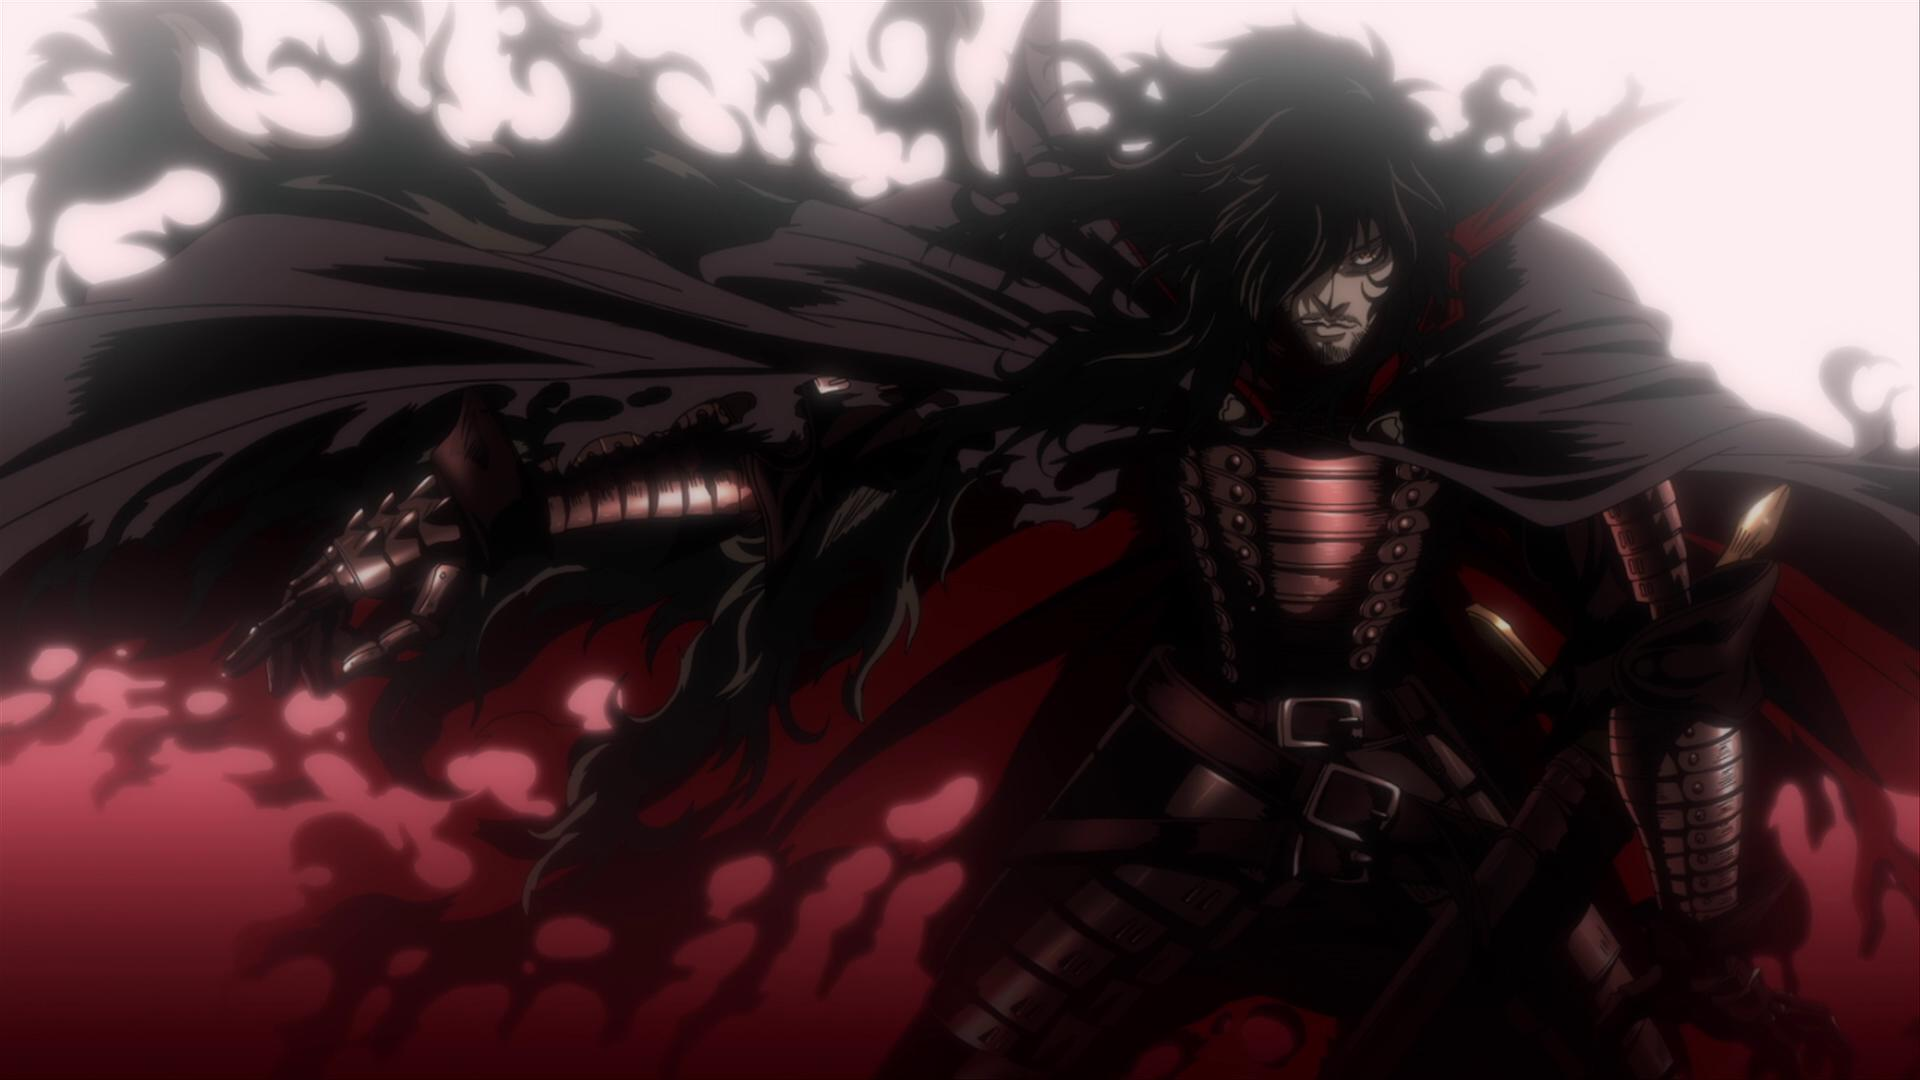 Alucard-Vampire-Hellsing-Ultimate-Free-Download-wallpaper-wp3602383